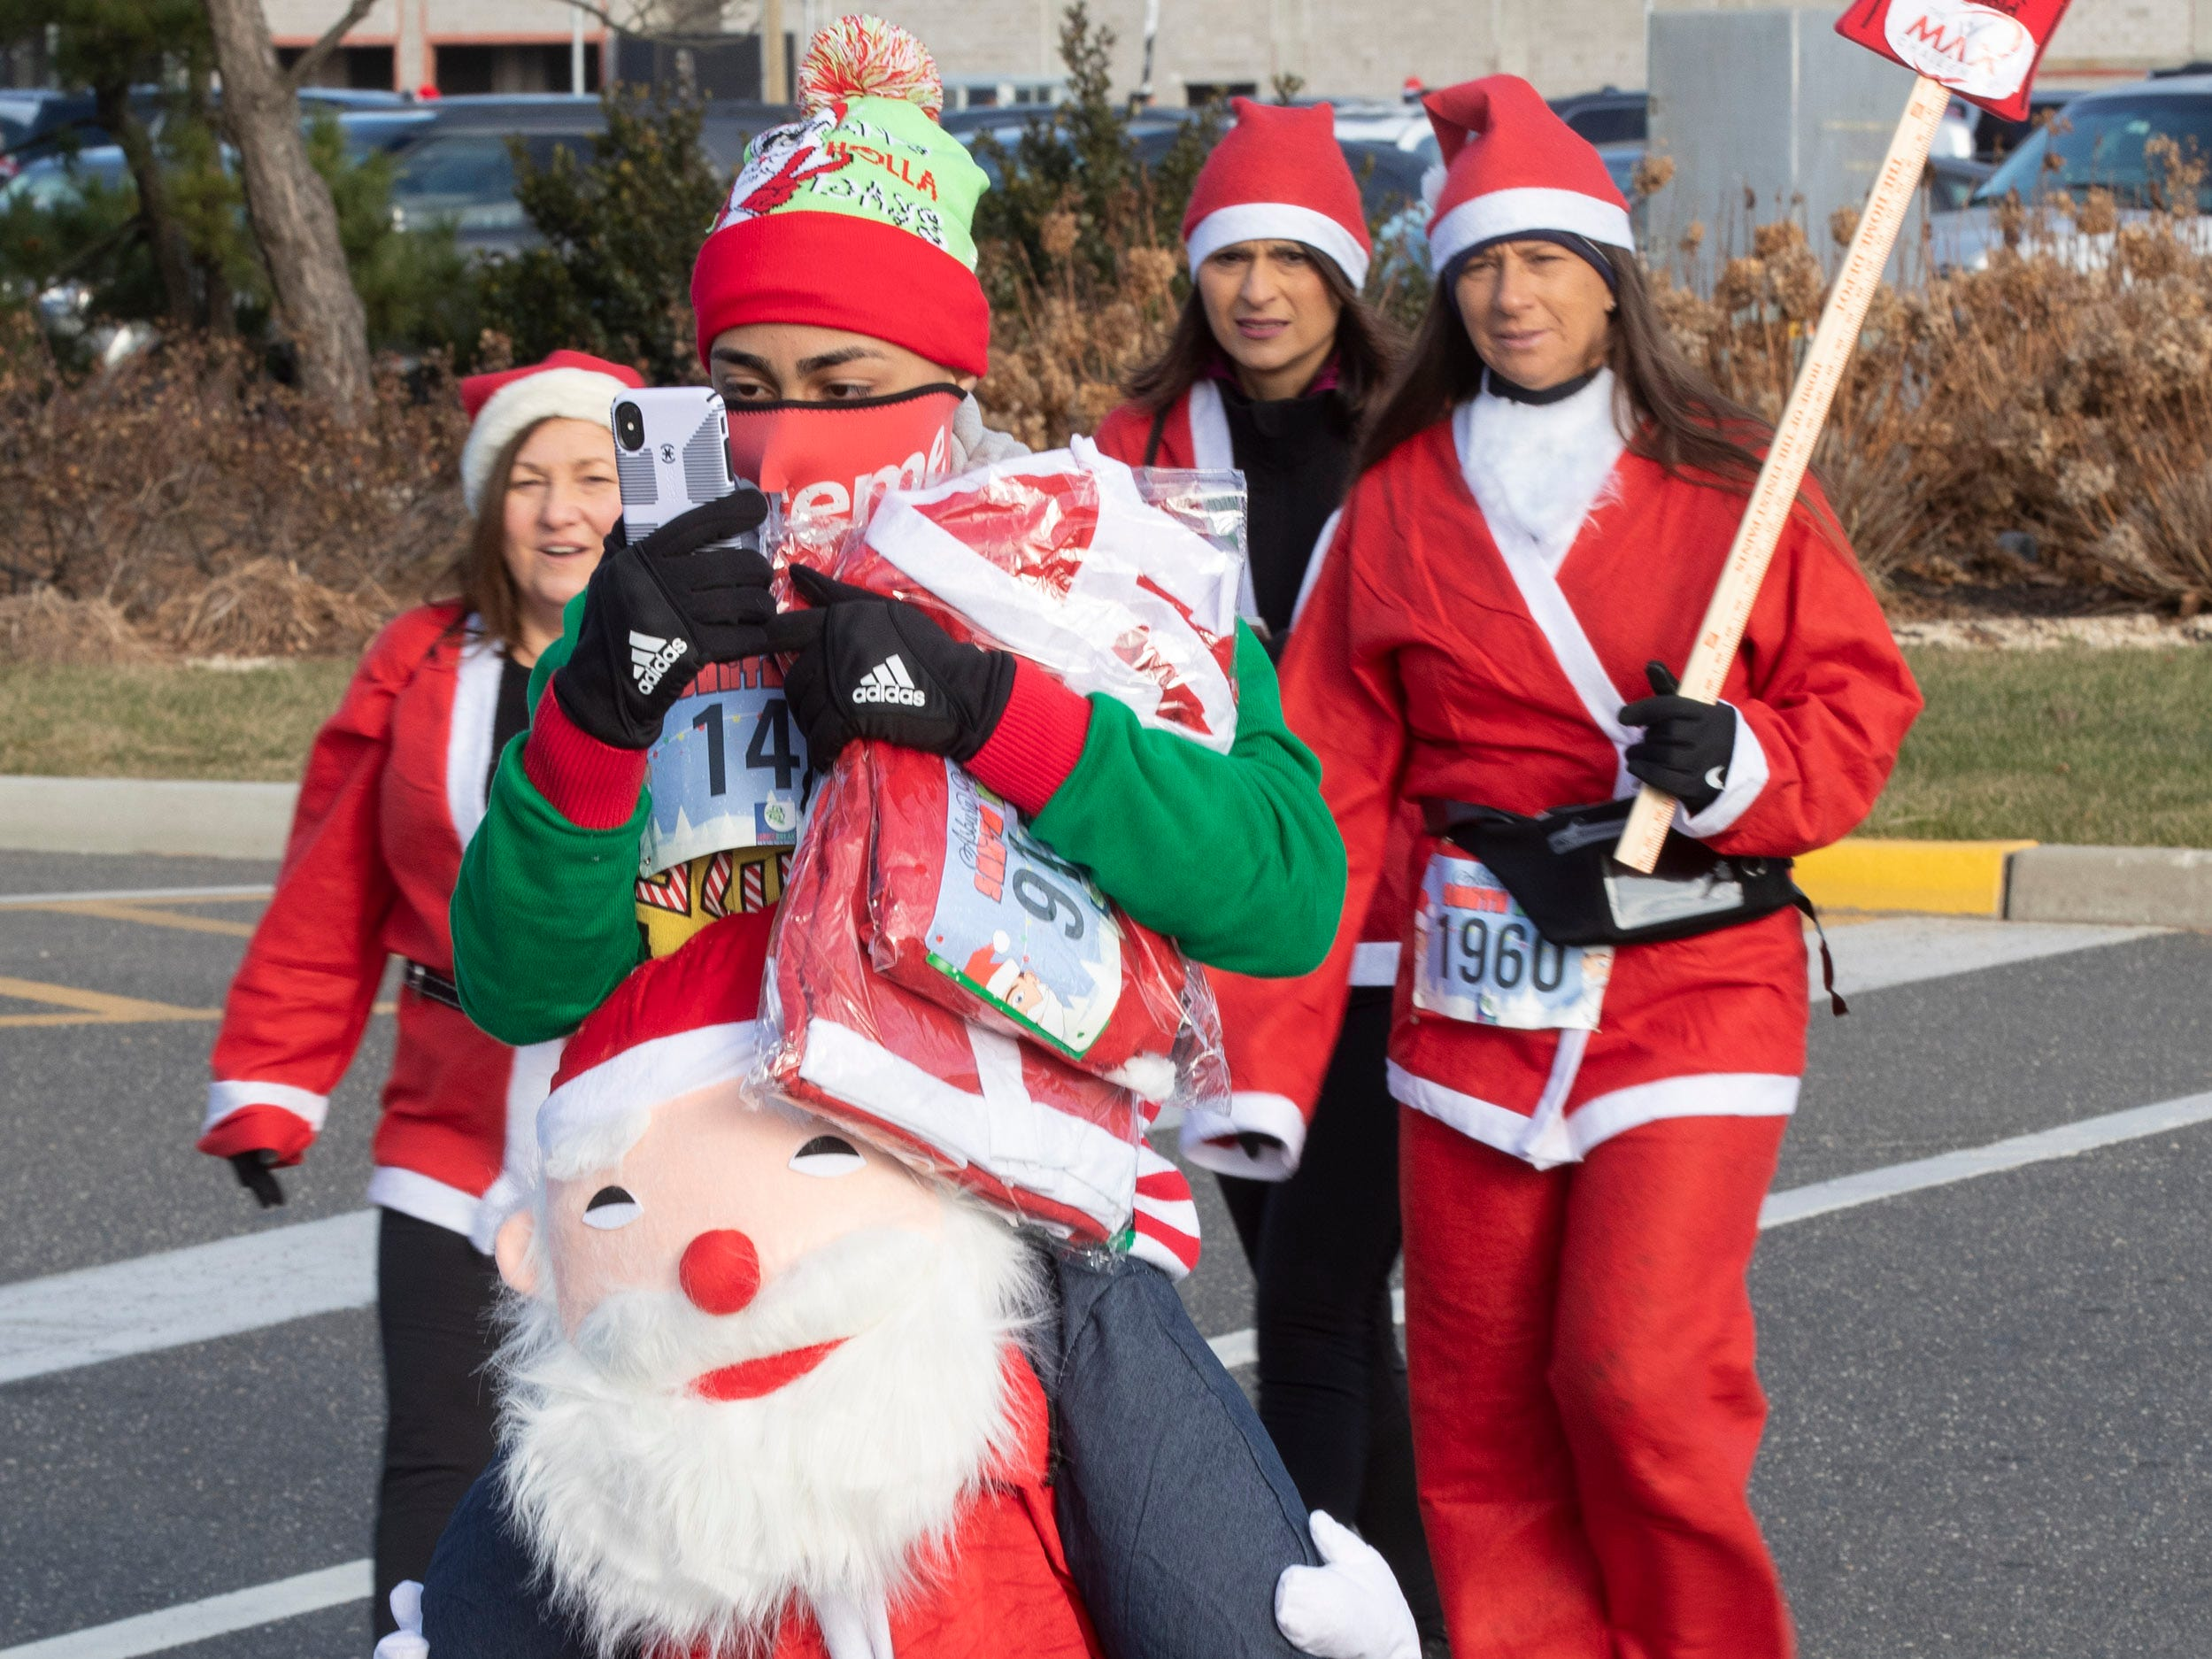 Victor Bosque of Old Bridge runs as two Santas. Runners brave the cold to participate in the annual Santa Run 5K in Asbury Park on December 8, 2018.